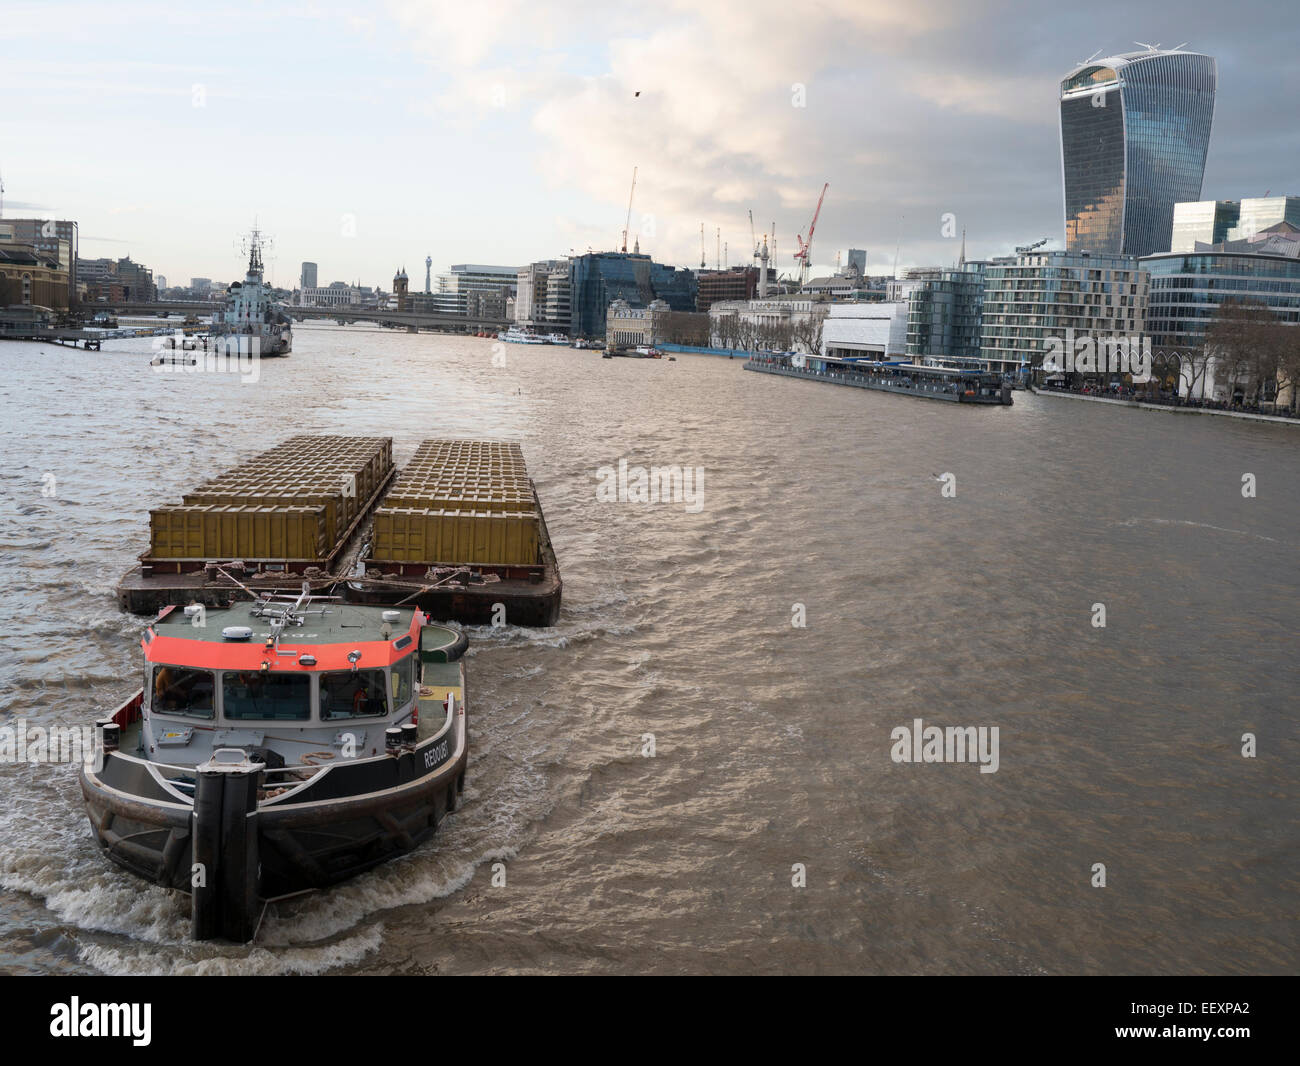 Redoubt tug boat, one of Cory Riverside Thames tug fleet, moving compacted refuse out of the city of London - Stock Image